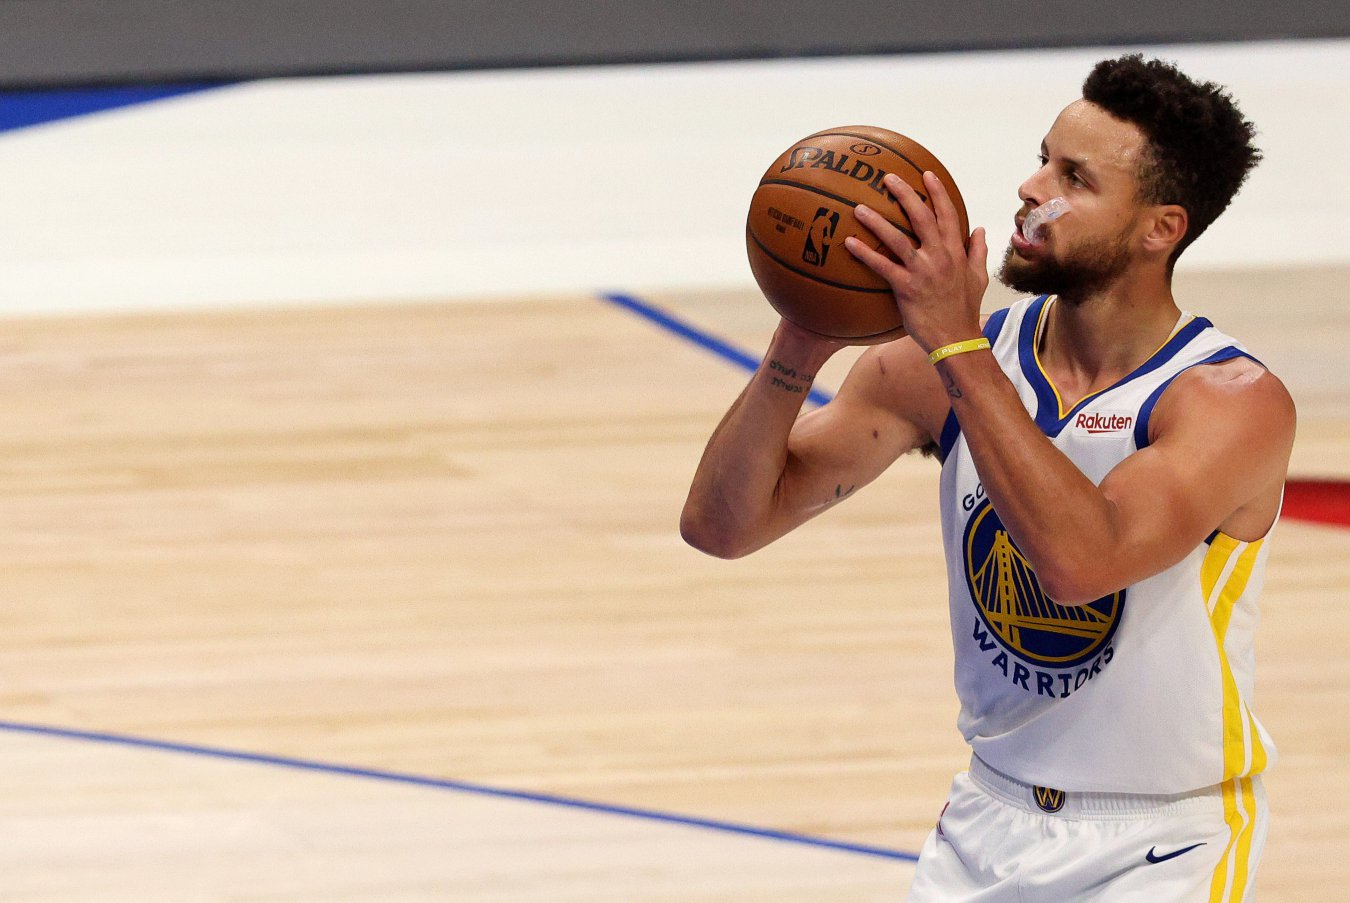 Stephen Curry (base, Golden State Warriors)